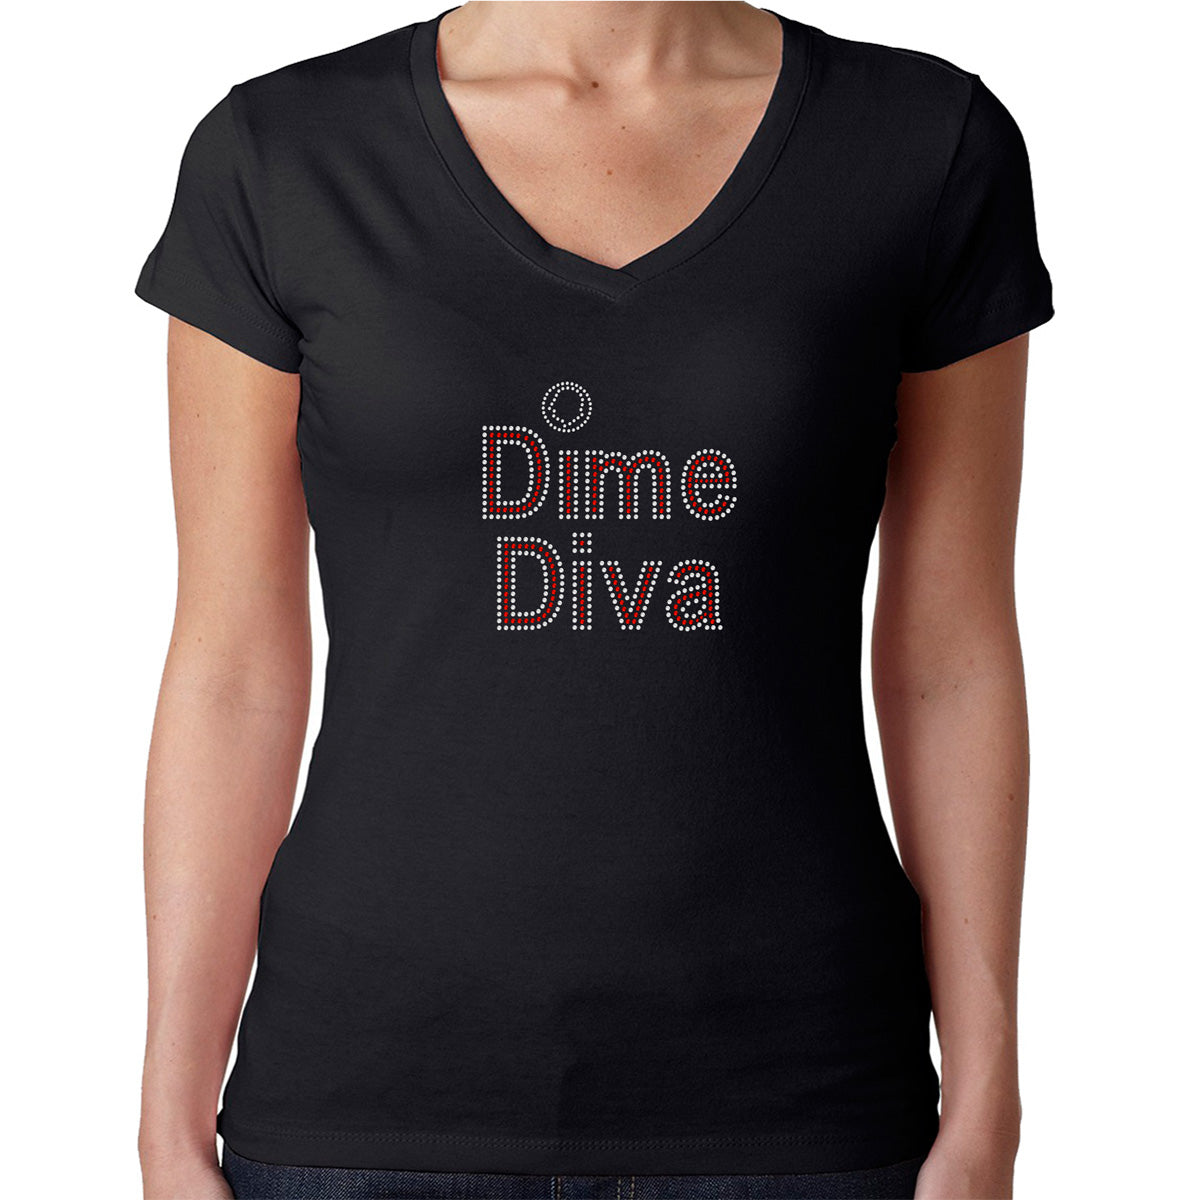 Womens T-Shirt Rhinestone Bling Black Fitted Tee Dime Diva, Sparkle White